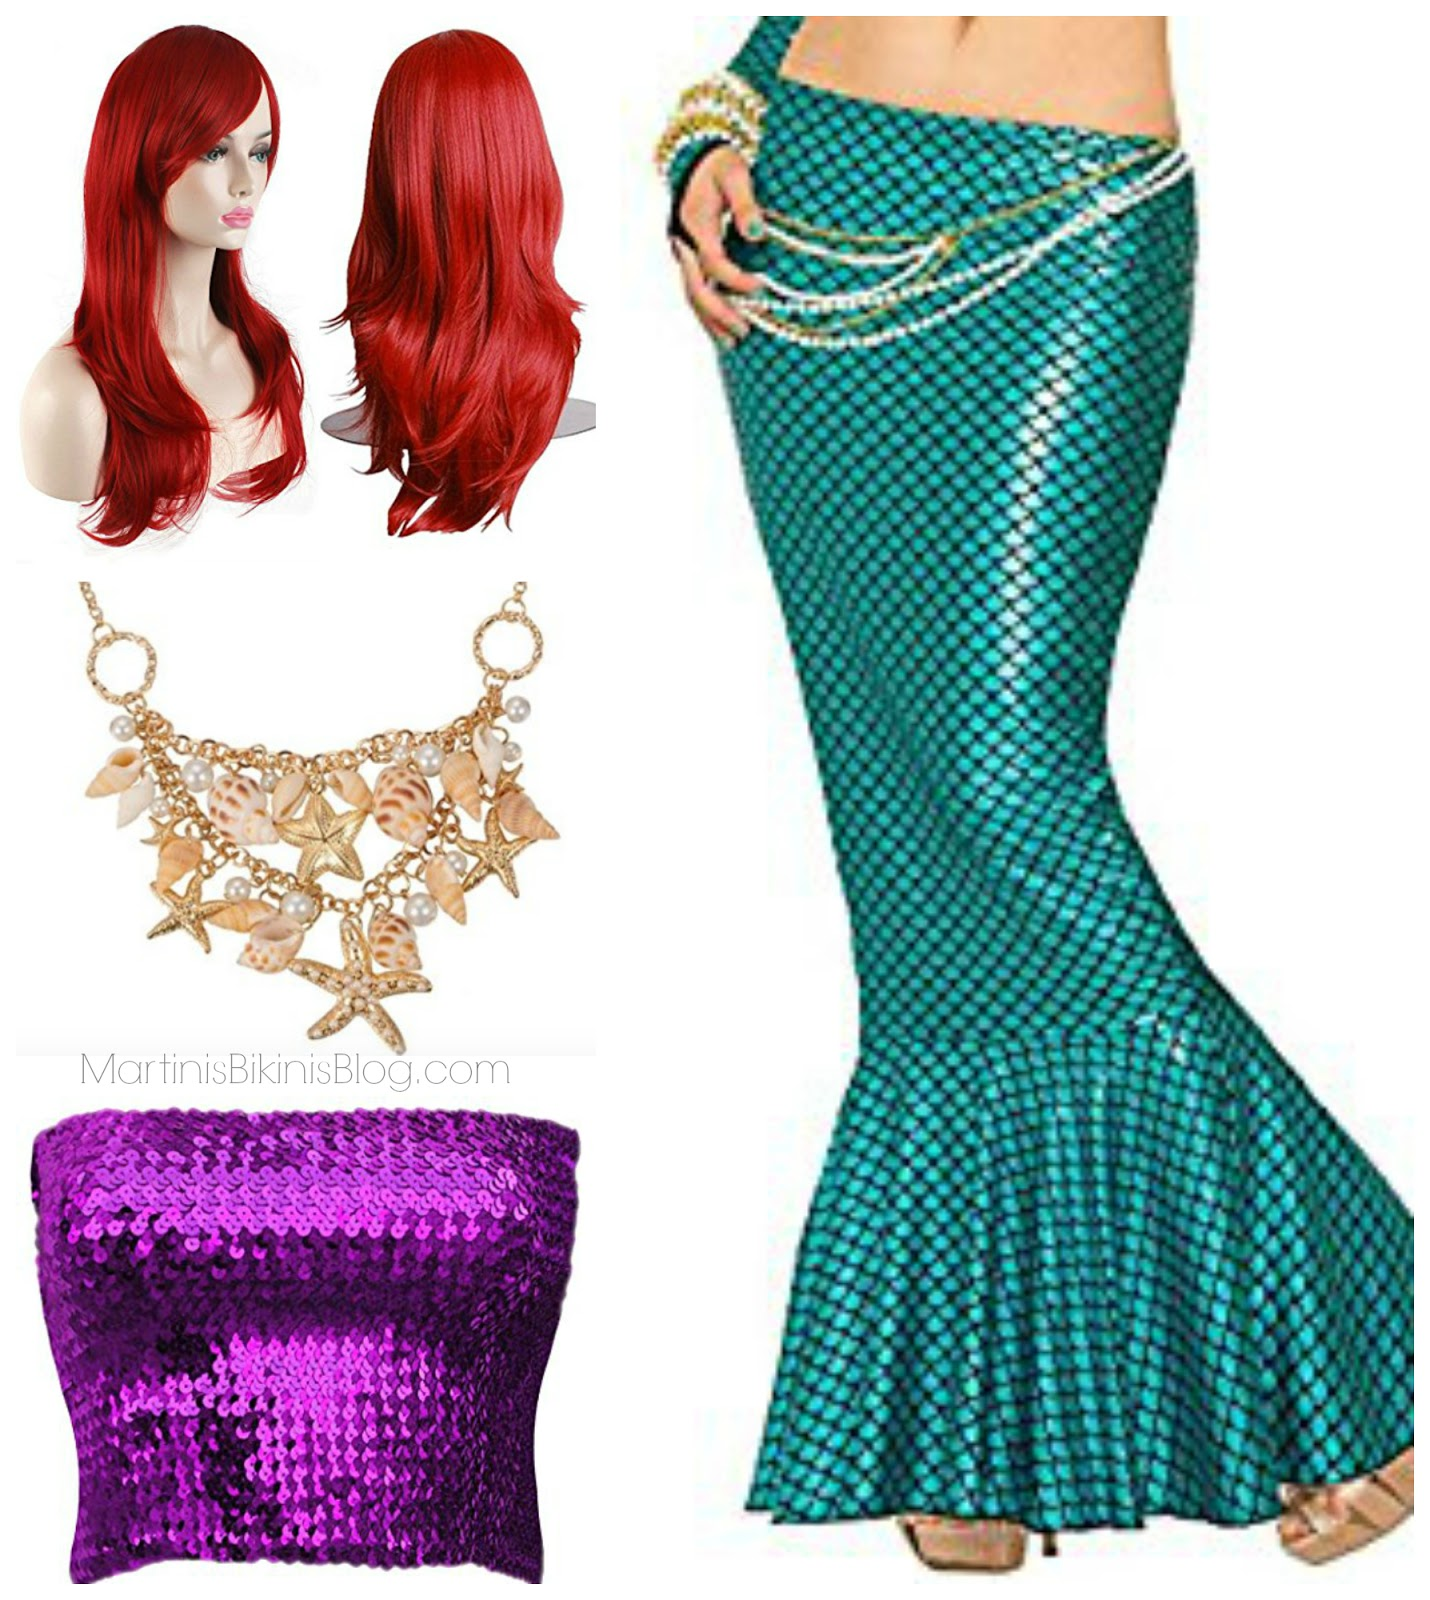 Itu0027s been many years since I purchased a Halloween costume but this year I decided to be a little festive and pull together a mermaid costume with Disneyu0027s ...  sc 1 st  Martinis | Bikinis & Mermaid Halloween Costume u0026 Colorful Mermaid Wigs - Martinis | Bikinis